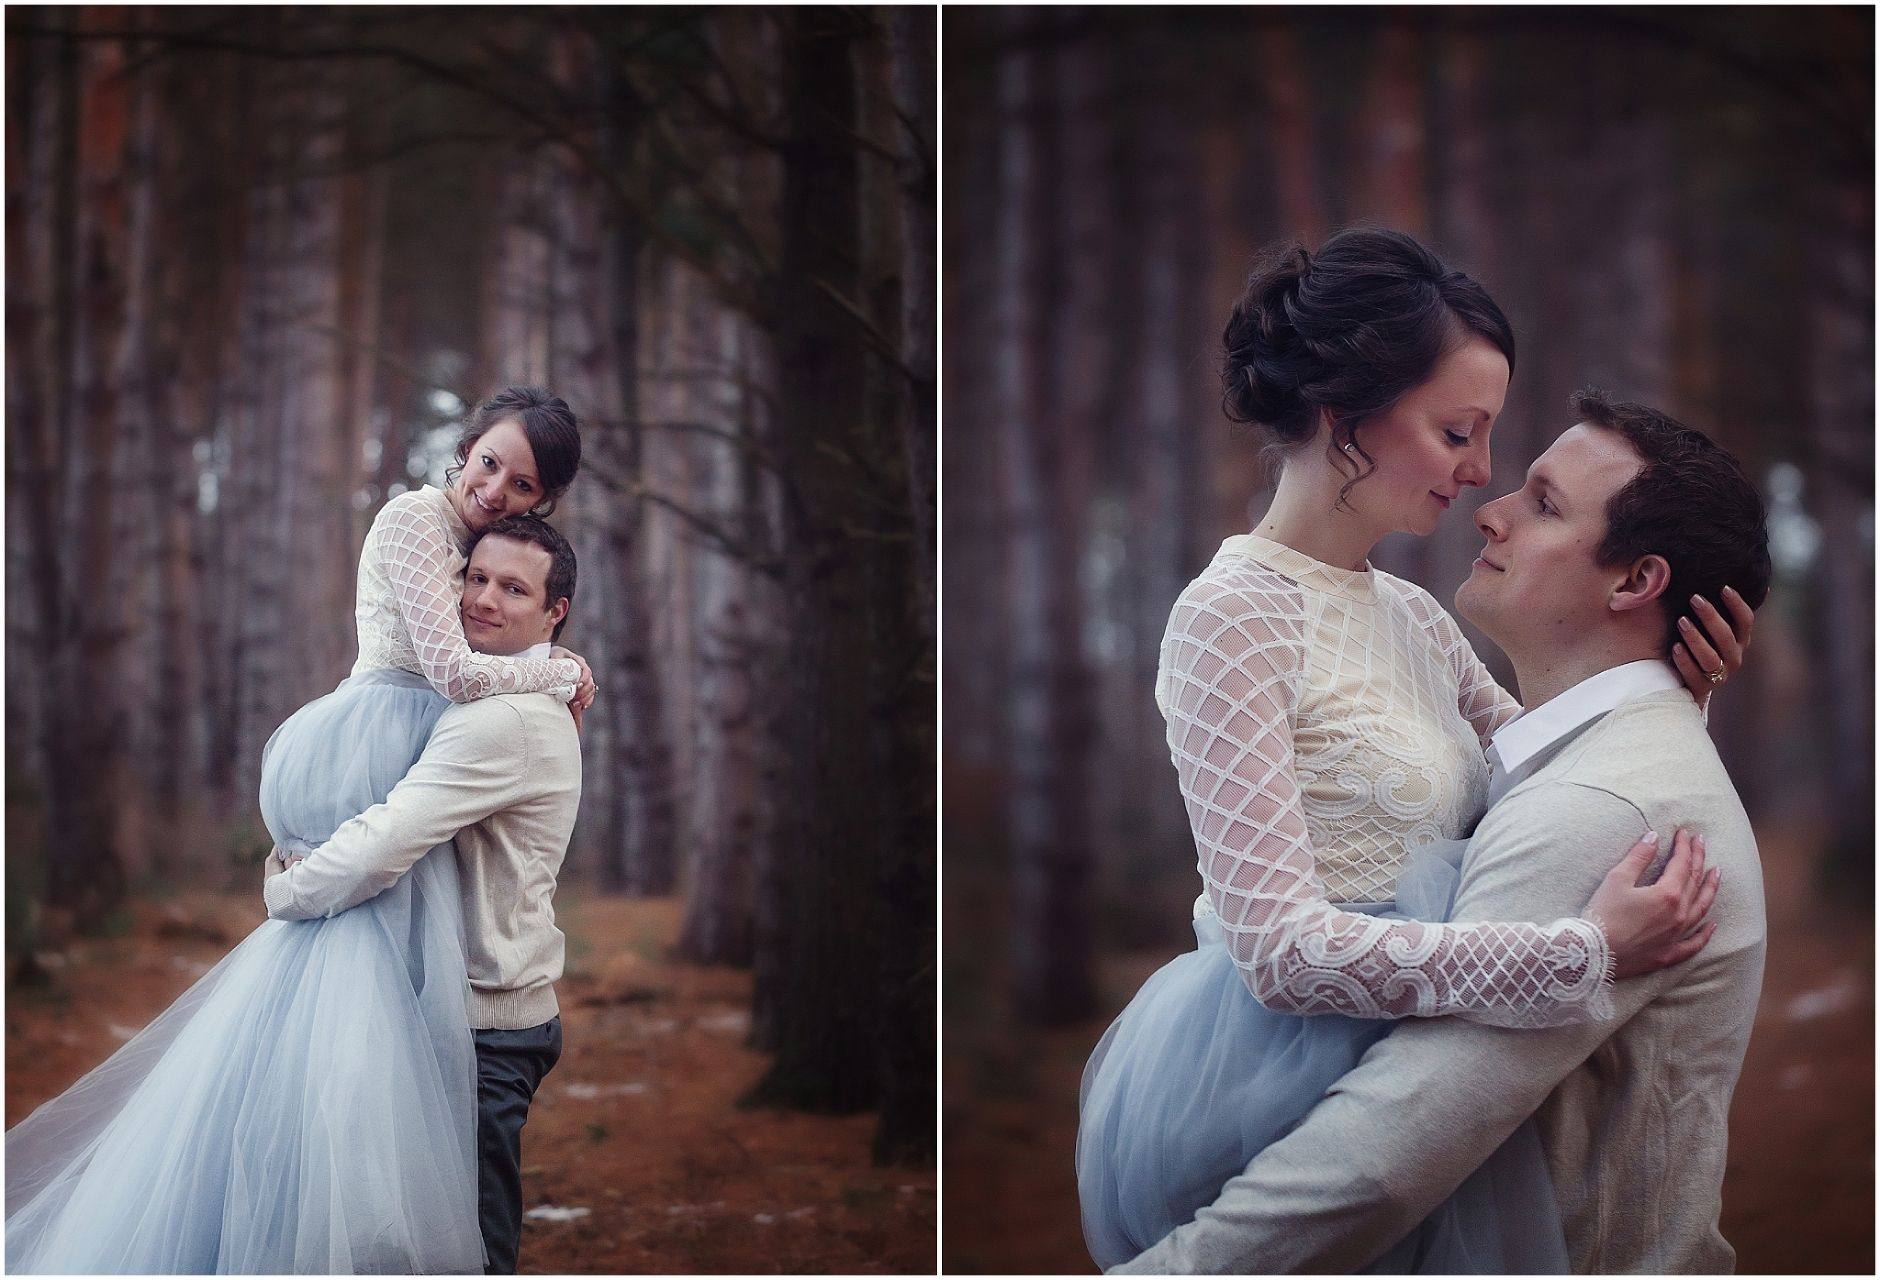 Romantic Photoshoot Wedding Photography Poses Bride And Groom Engagement